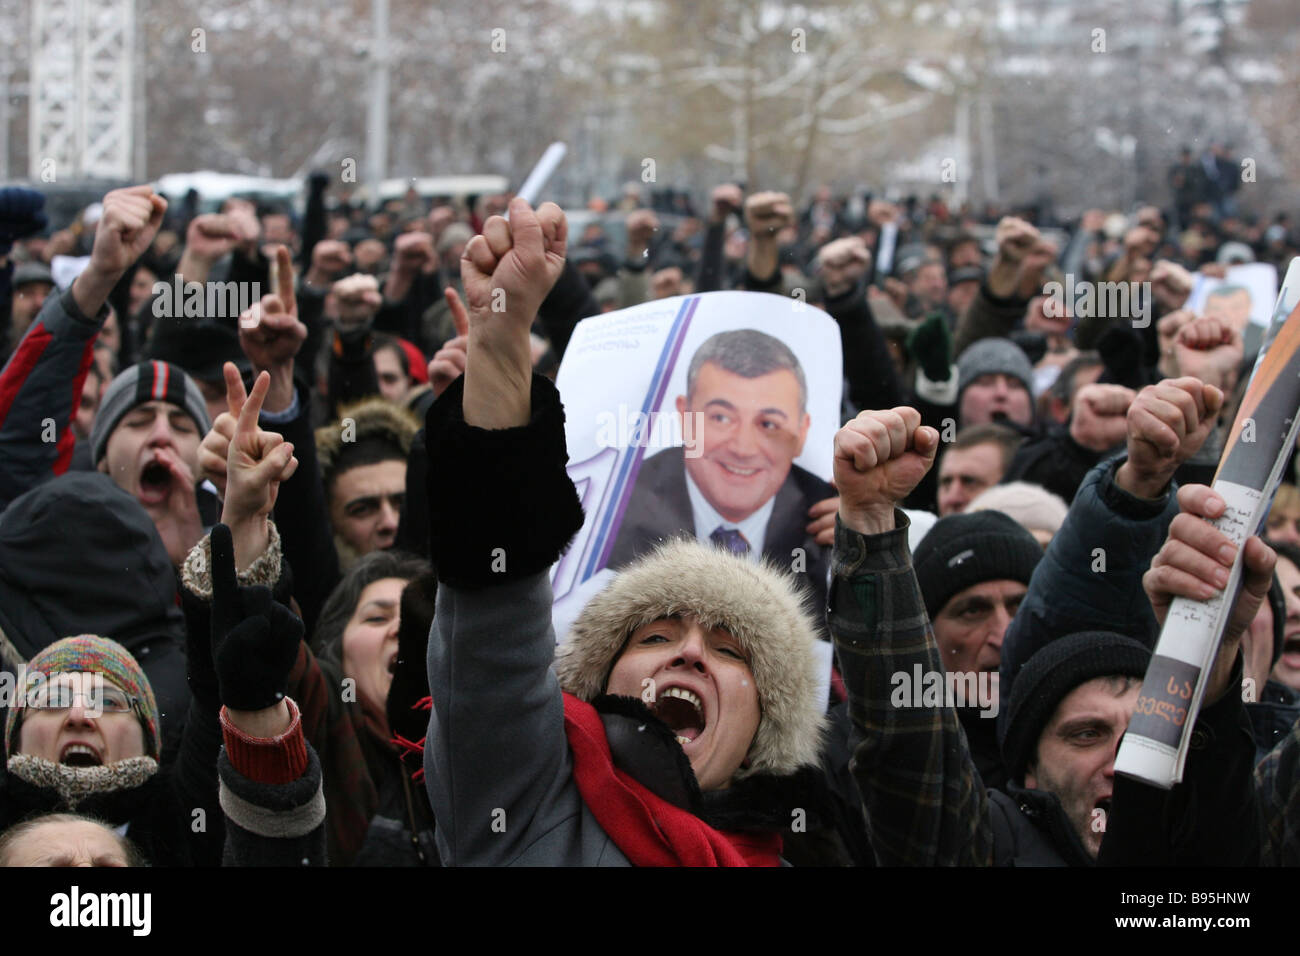 A thousands strong rally in Tbilisi in support of Levan Gachechiladze presidential candidate from the united opposition - Stock Image